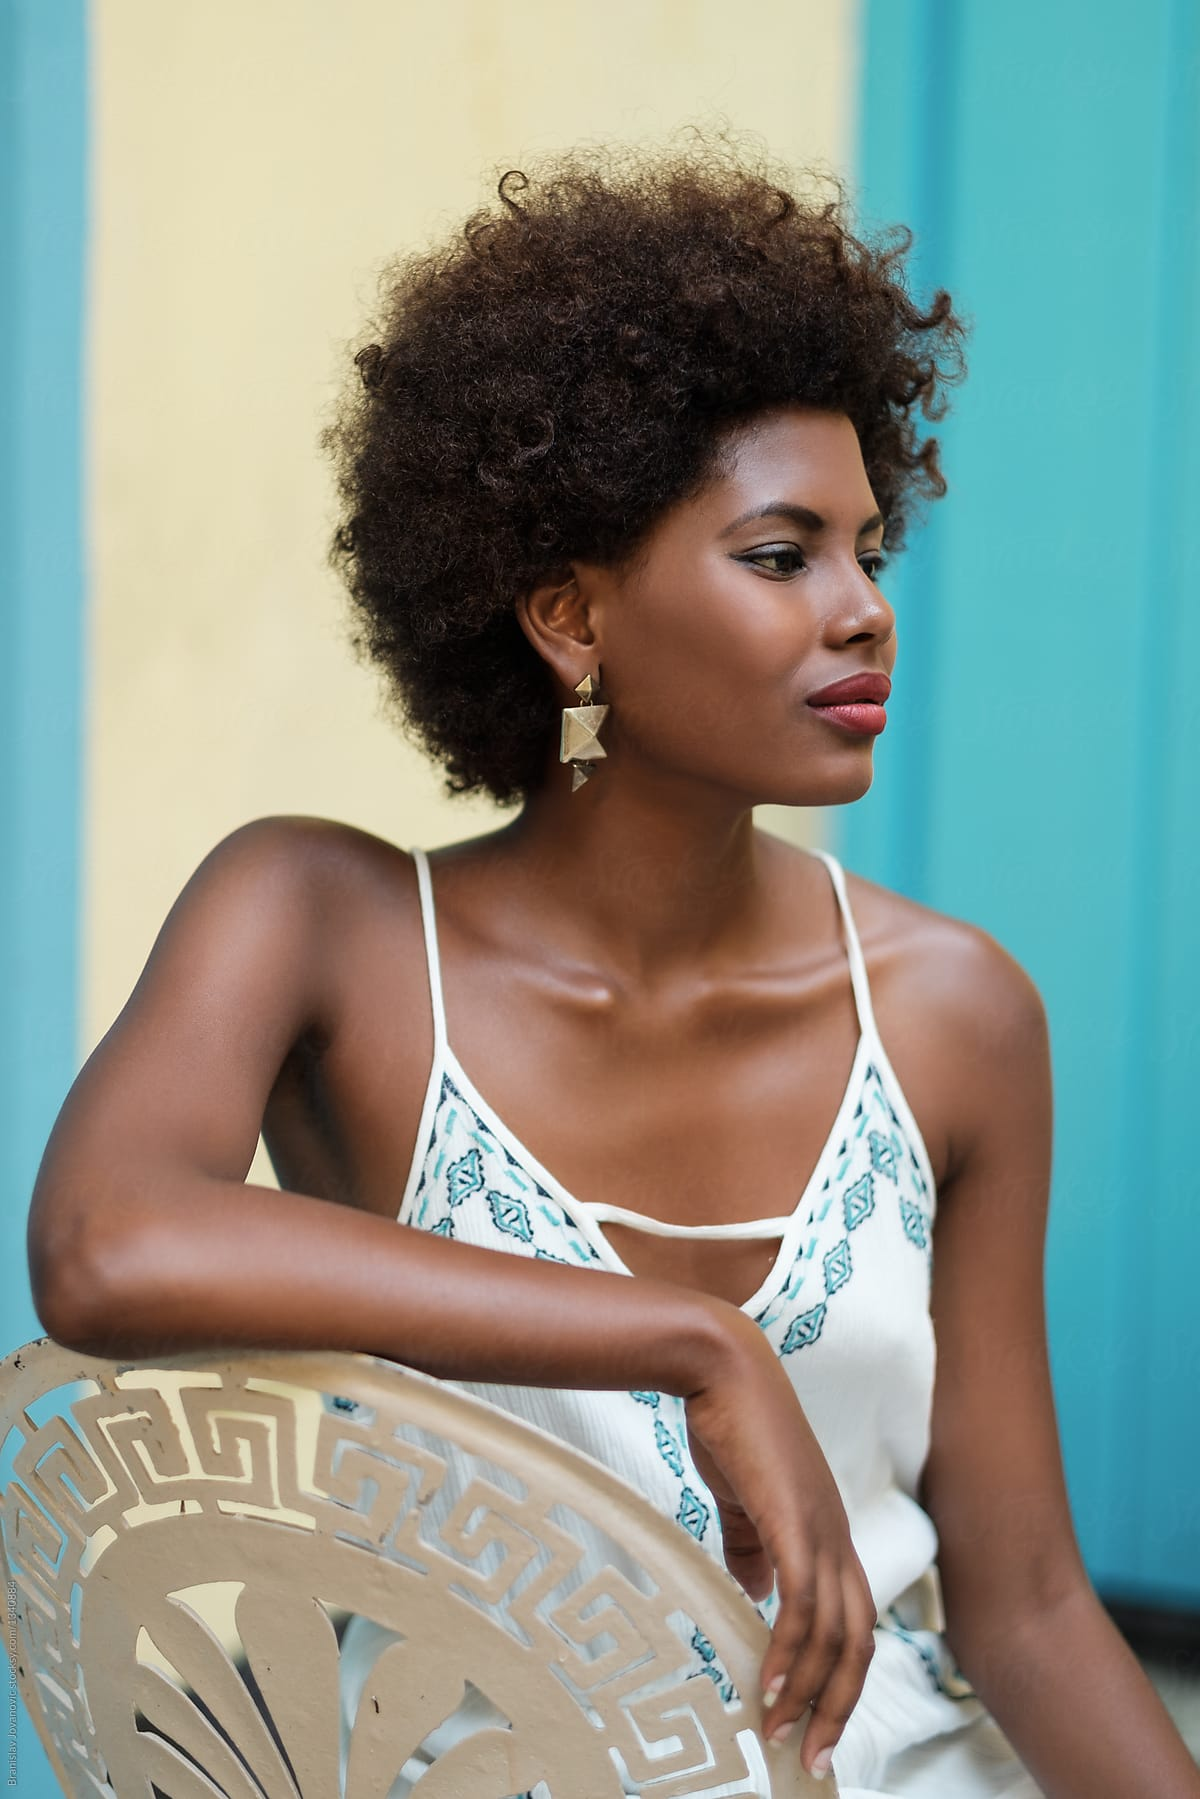 Portrait Of Beautiful African Woman With Afro Hairstyle Stocksy United